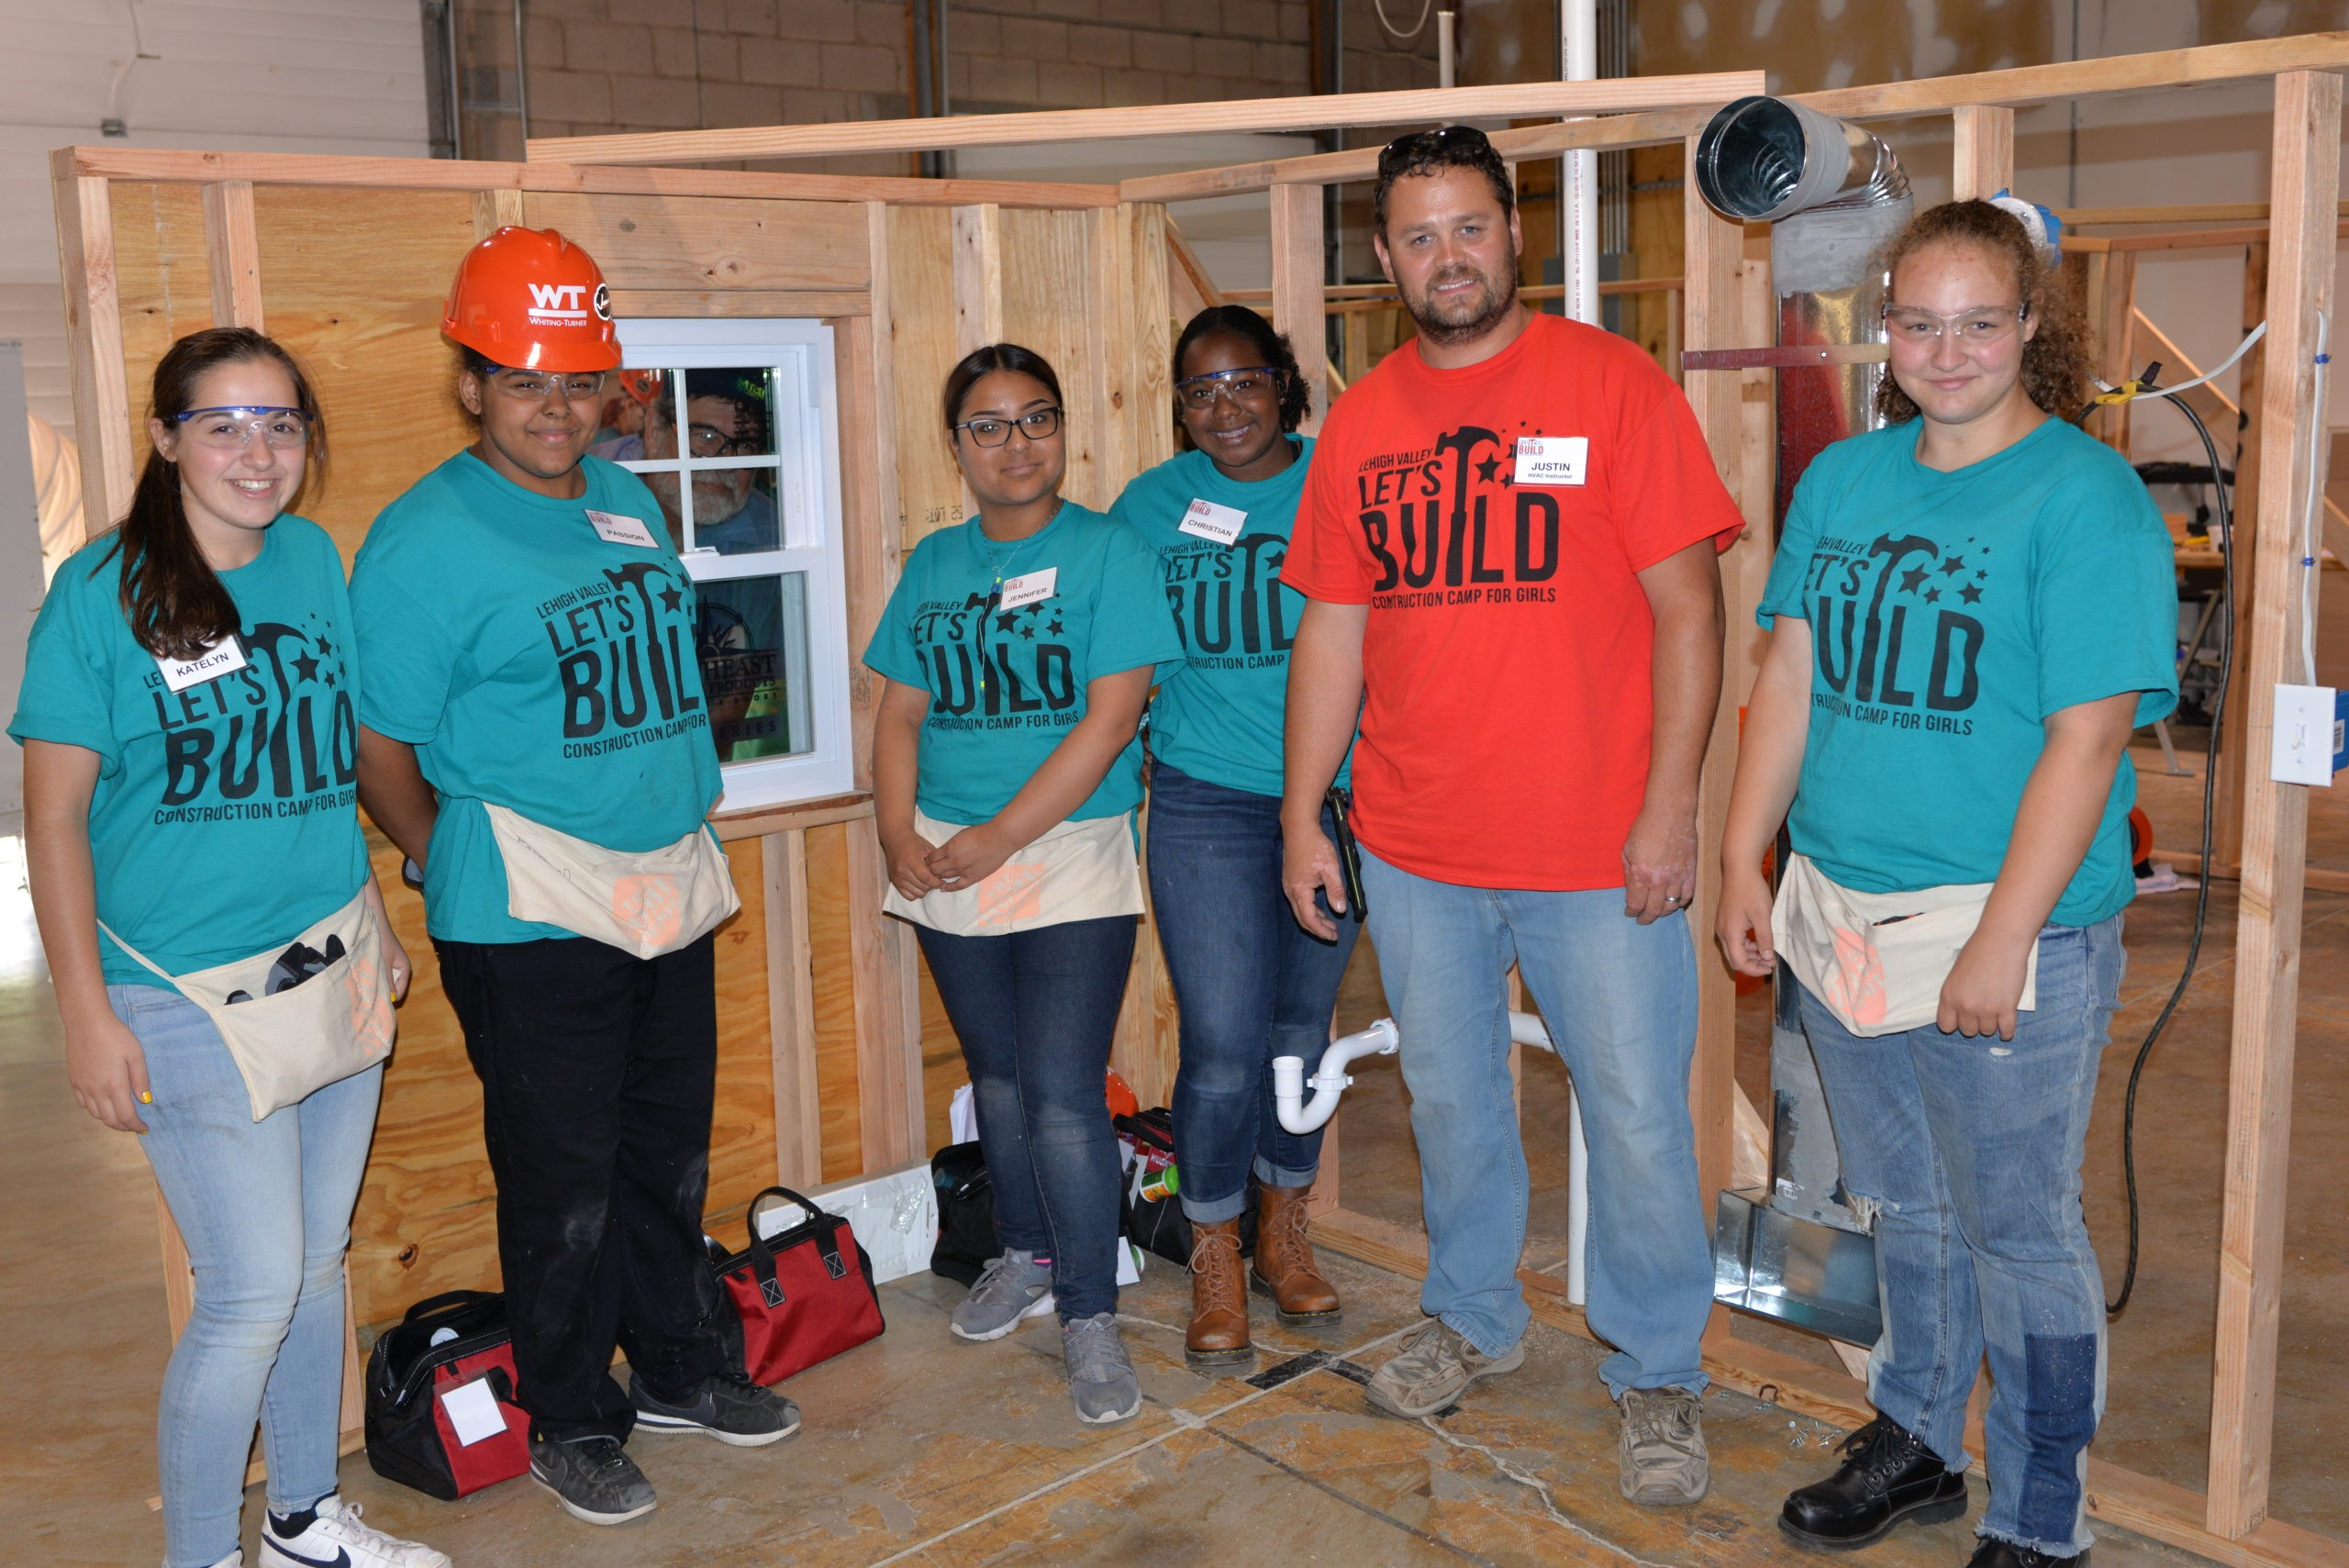 LEHIGH VALLEY LET'S BUILD CONSTRUCTION CAMP FOR GIRLS; A SUCCESSFUL SECOND YEAR